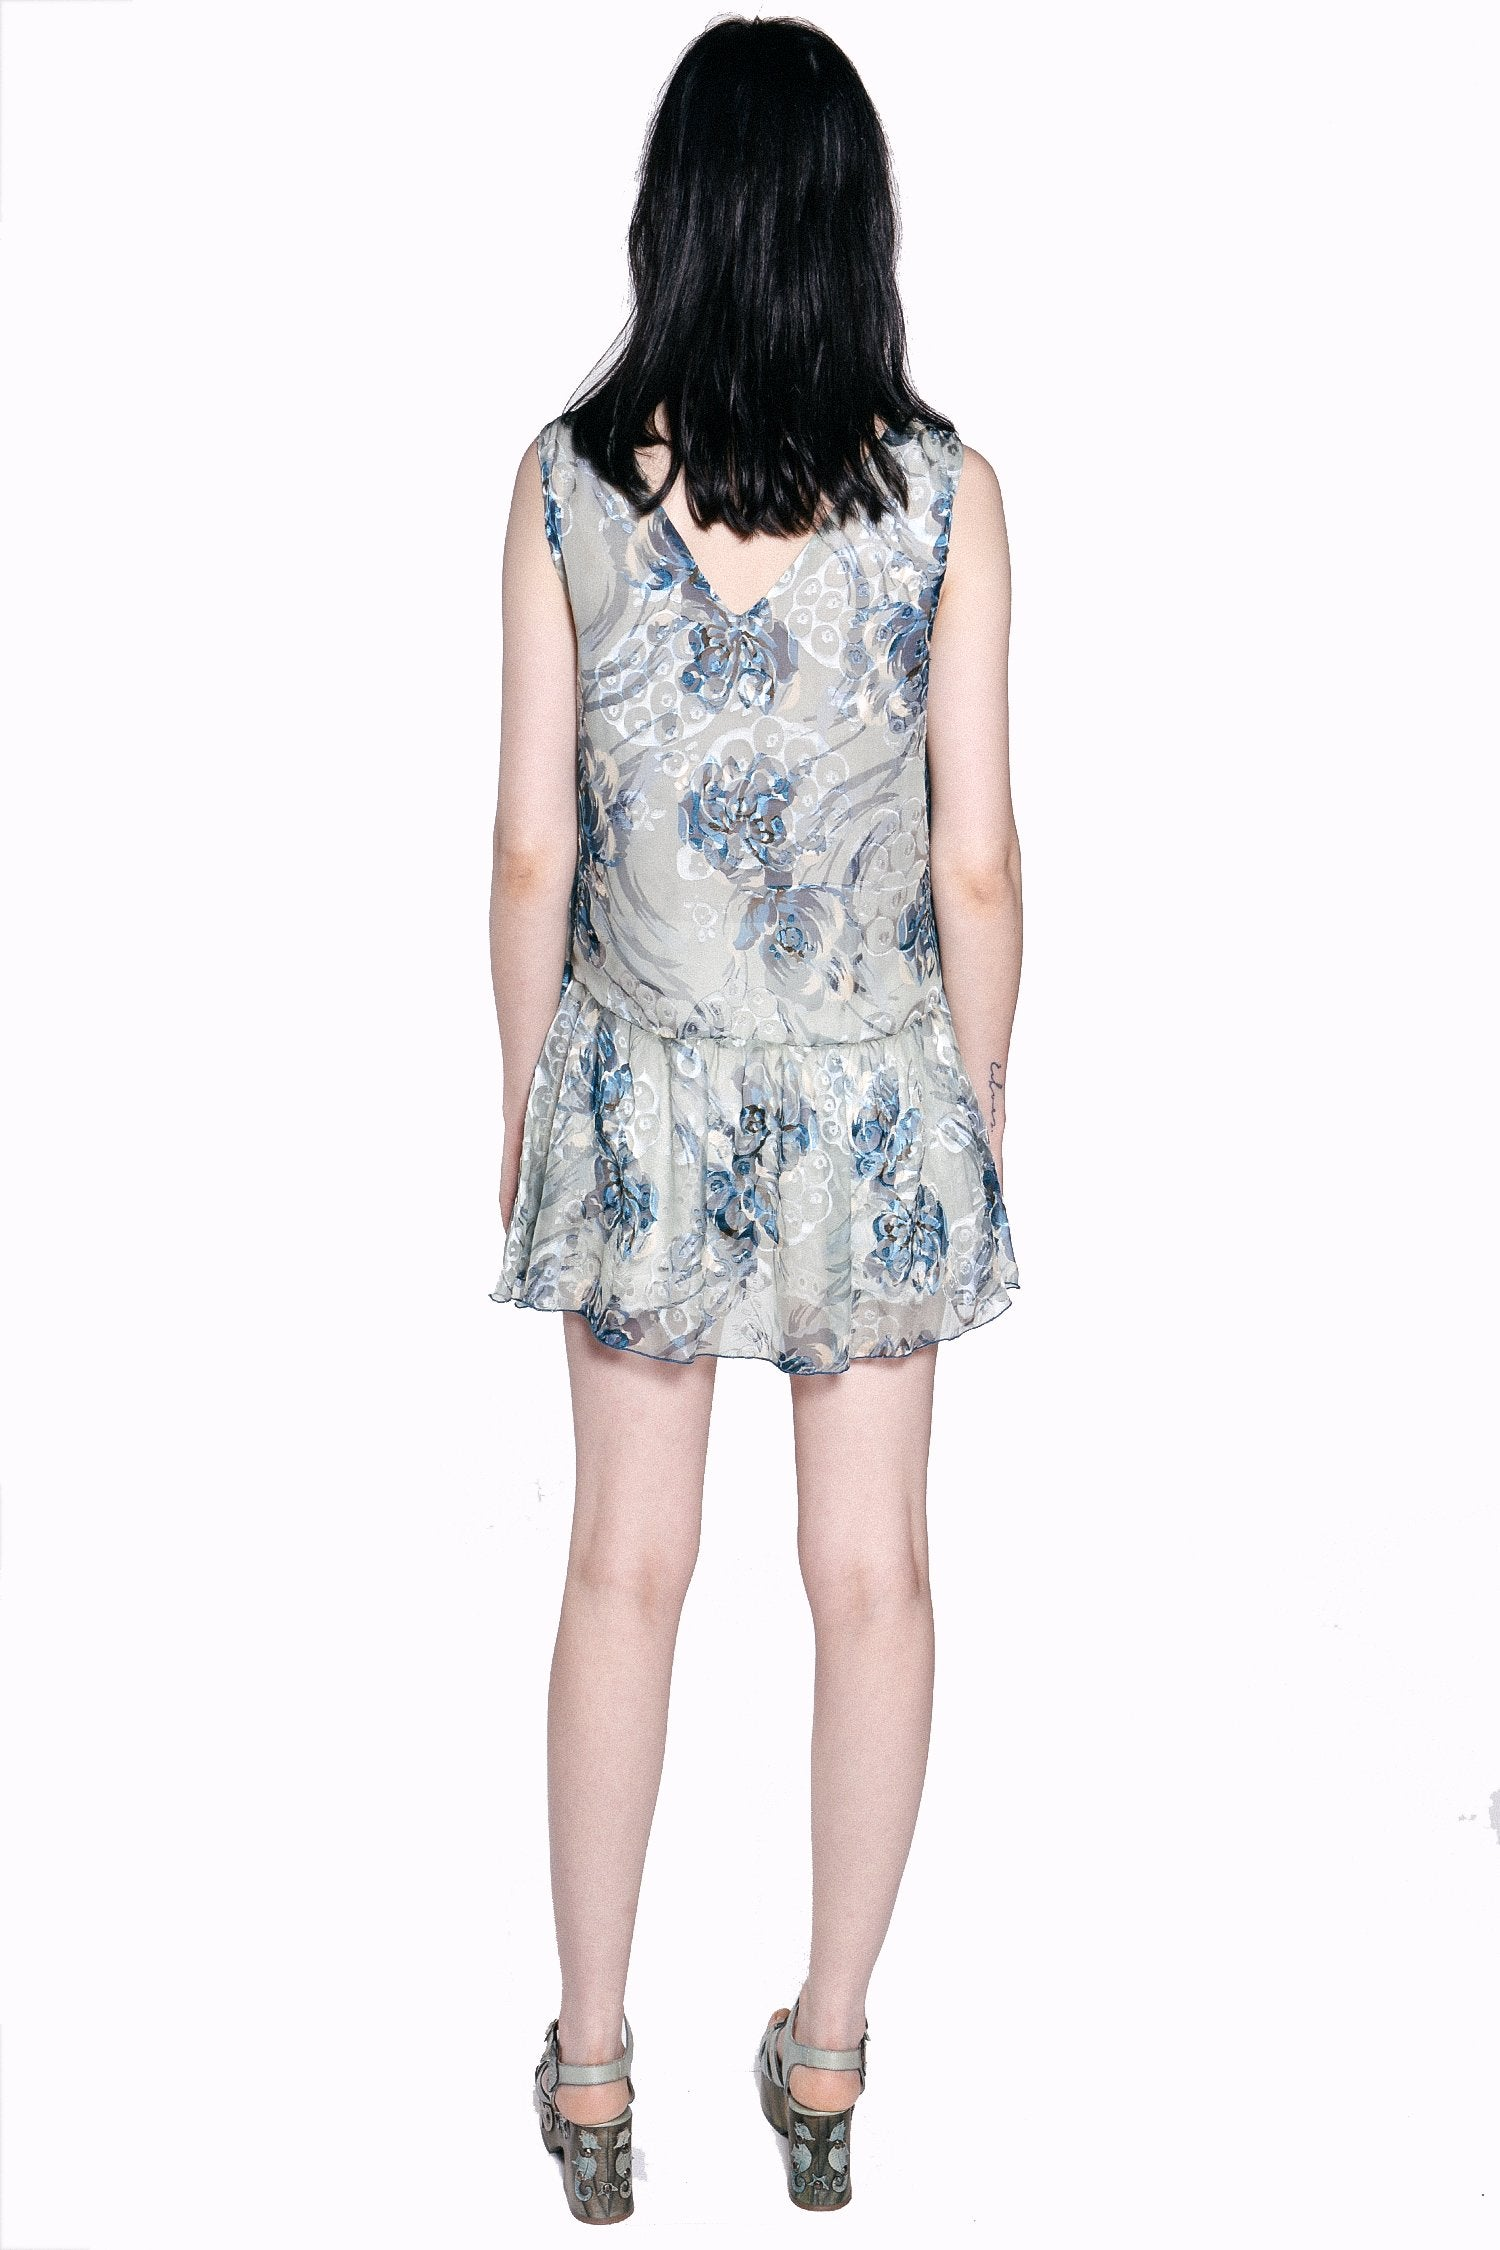 Lotus Pod Burnout Sleeveless Top - Anna Sui